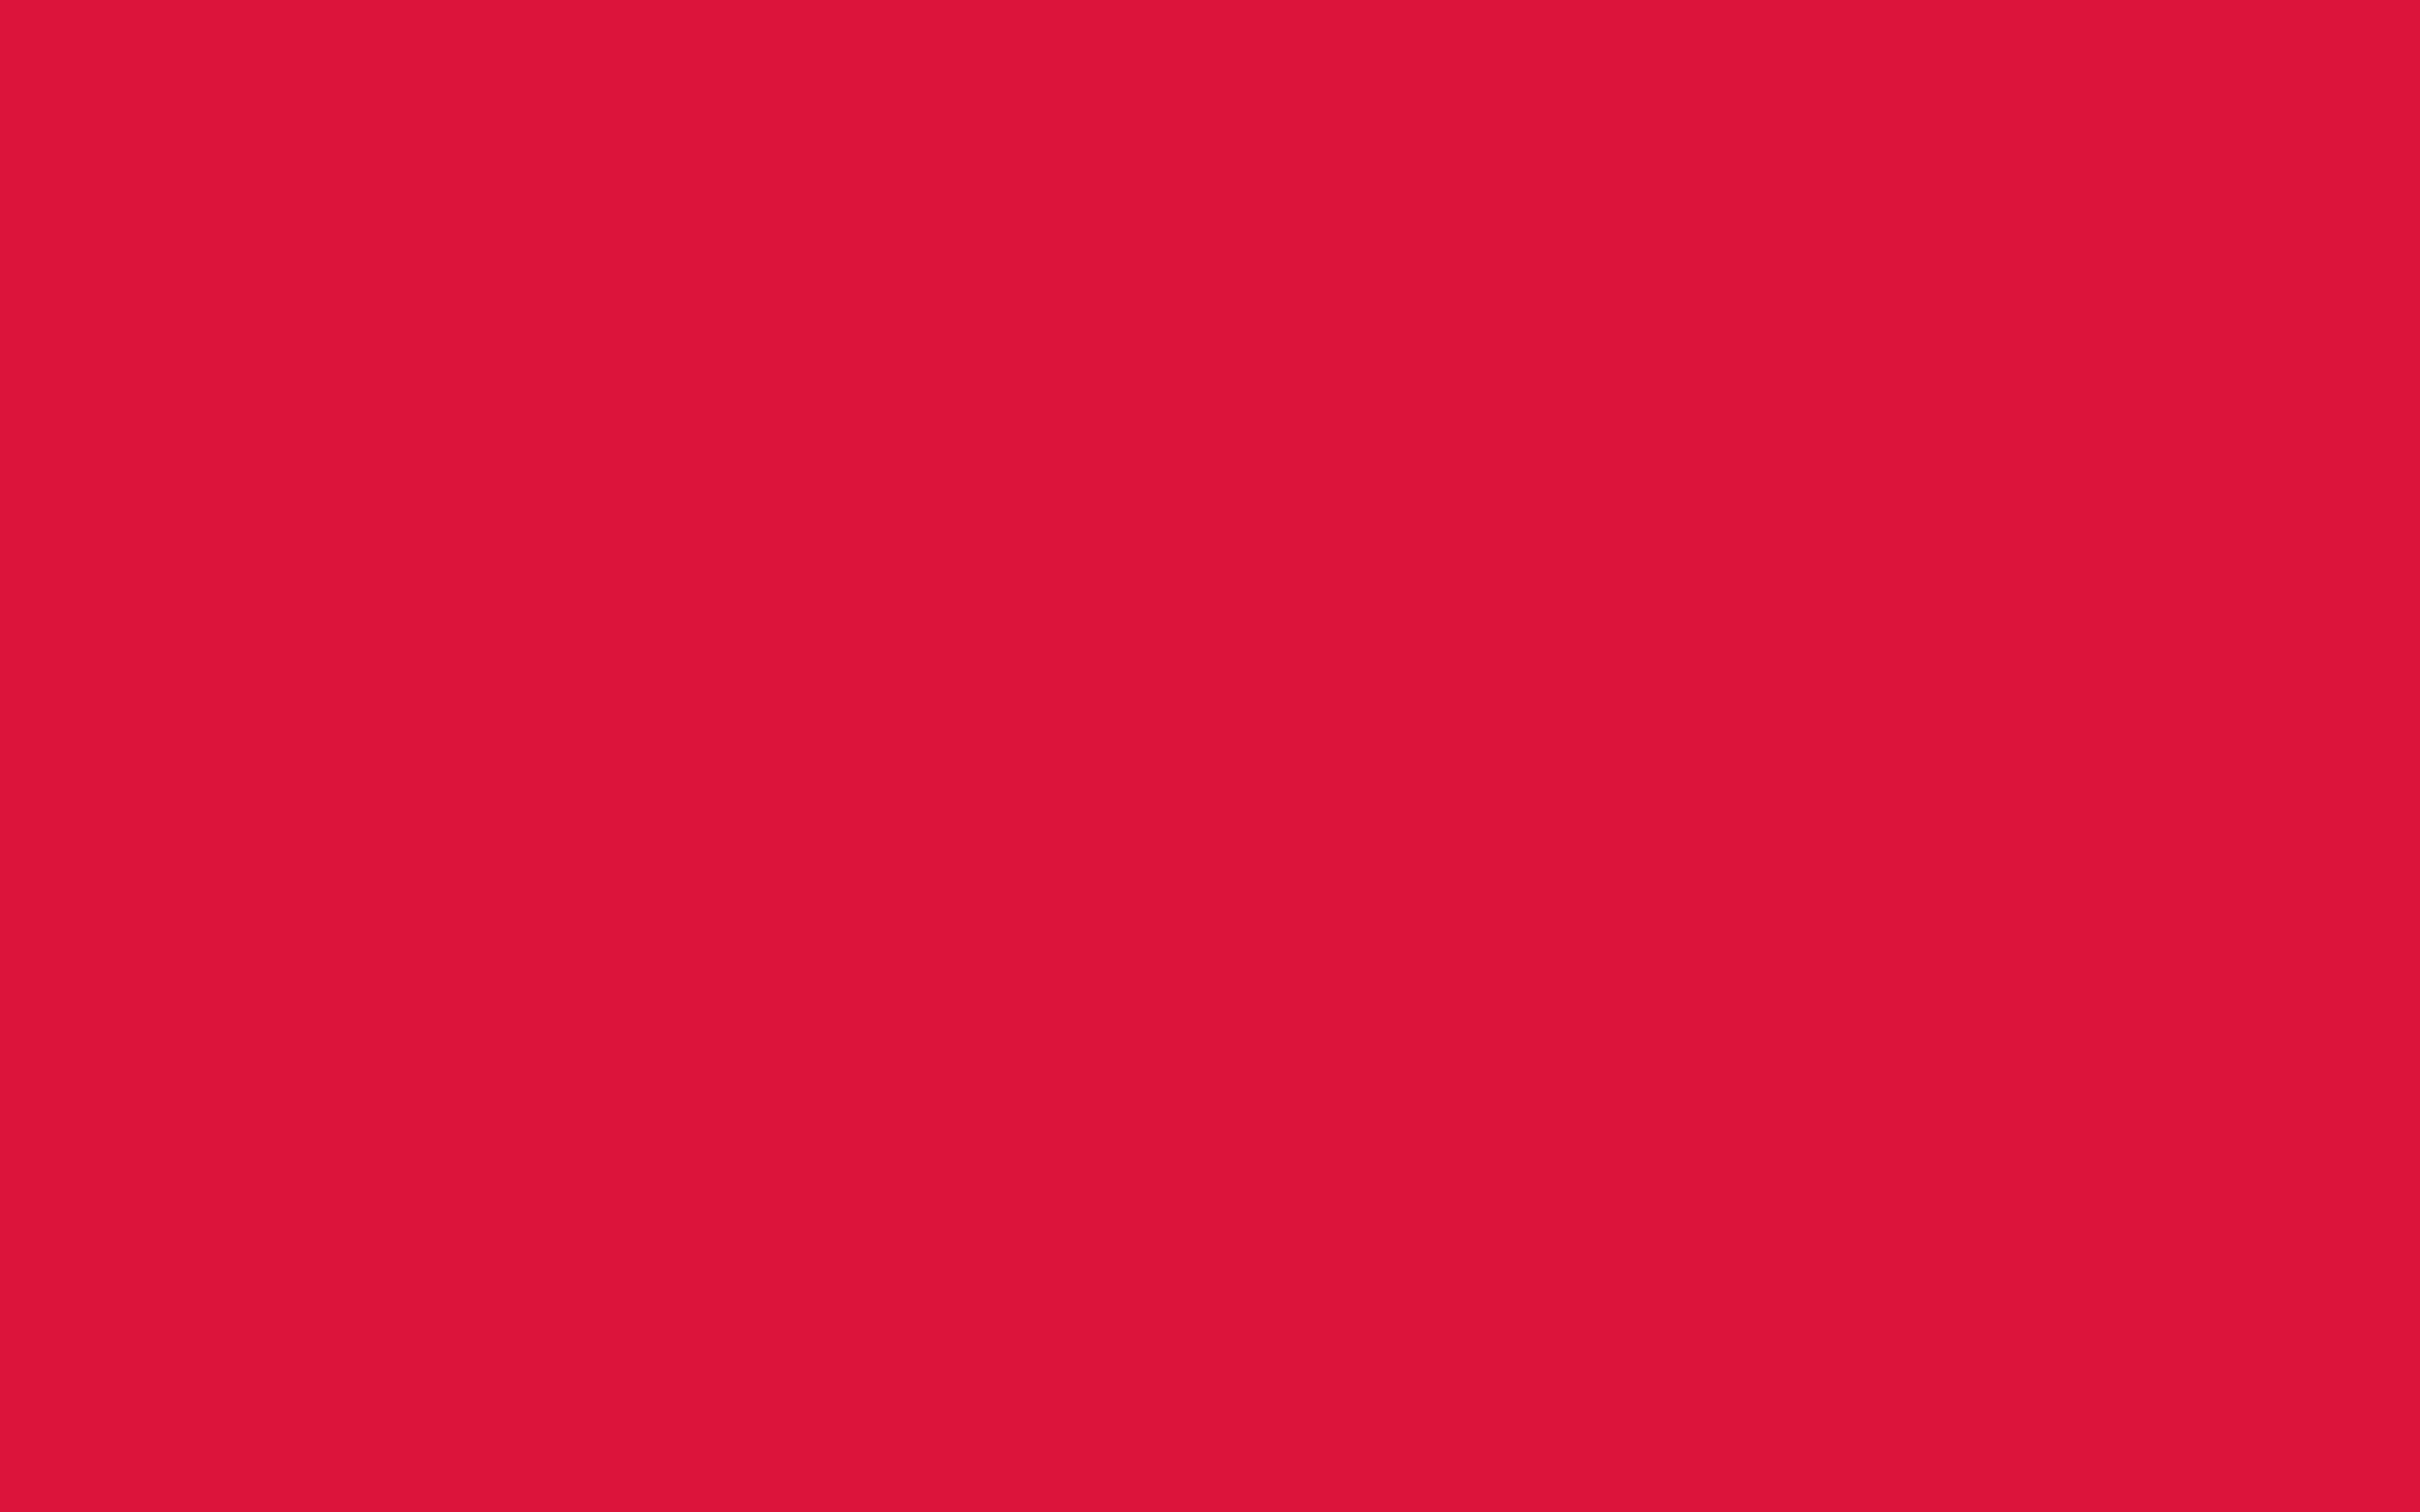 2560x1600 Crimson Solid Color Background